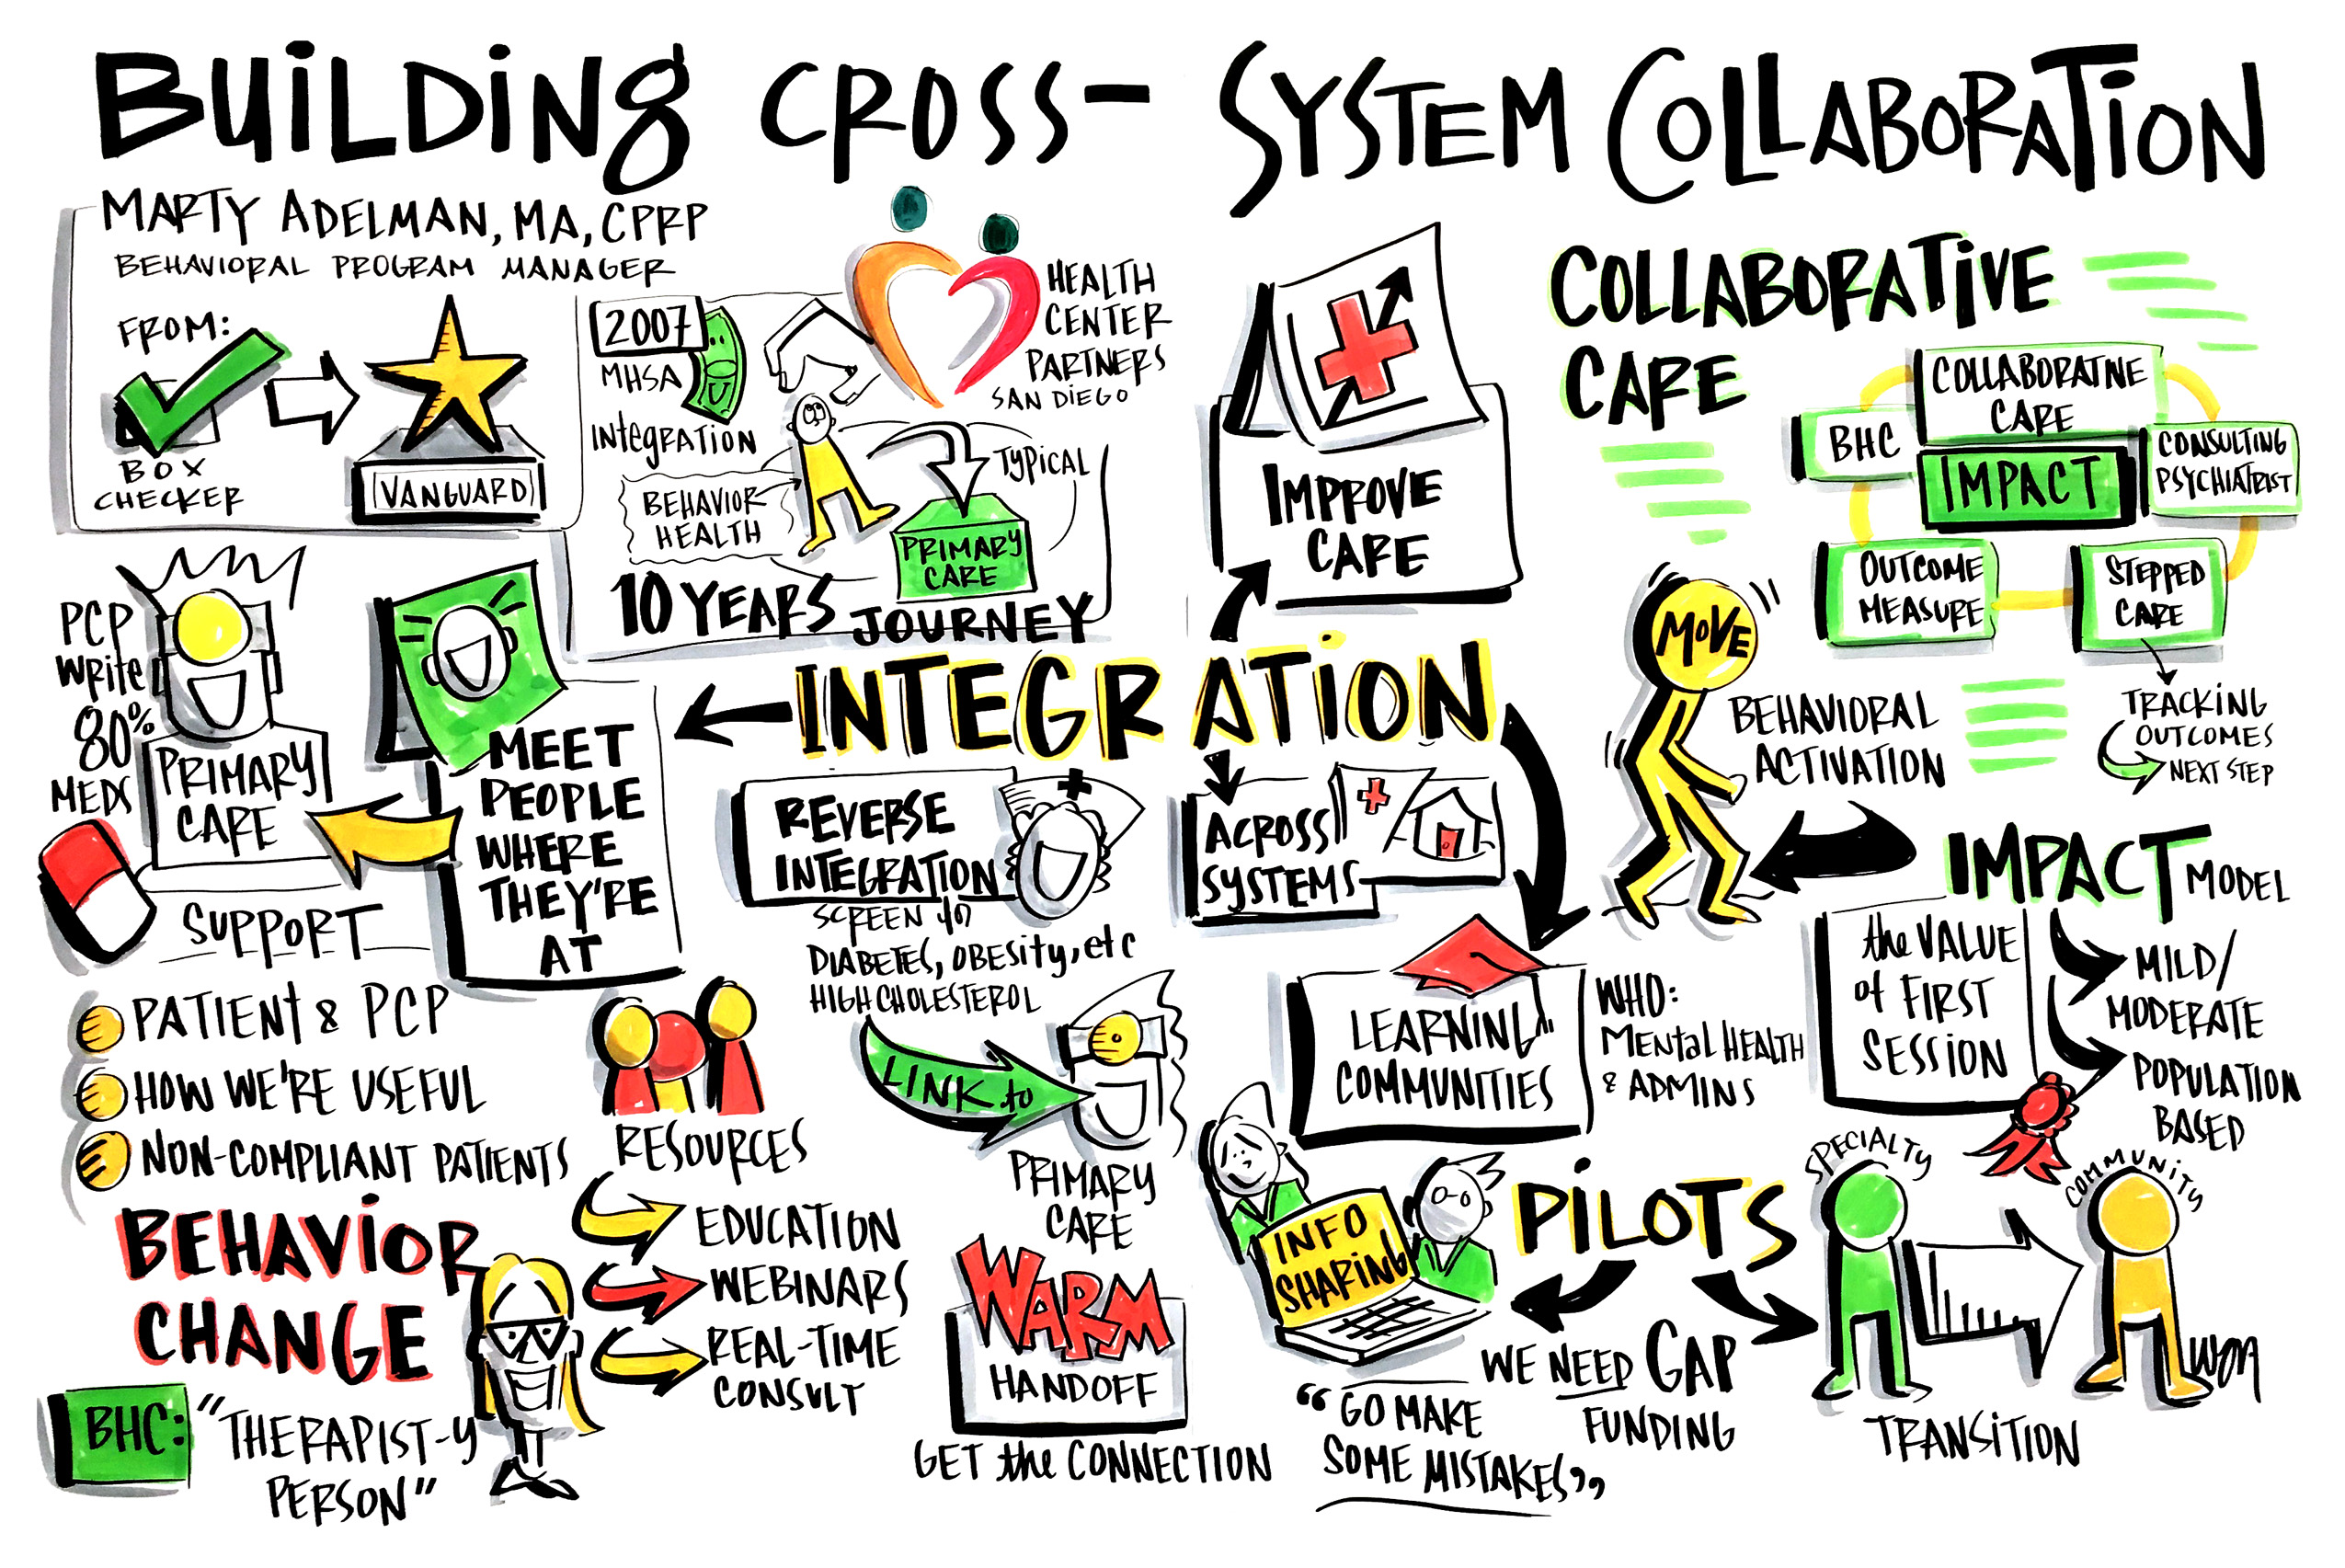 01building-cross-system-collaboration